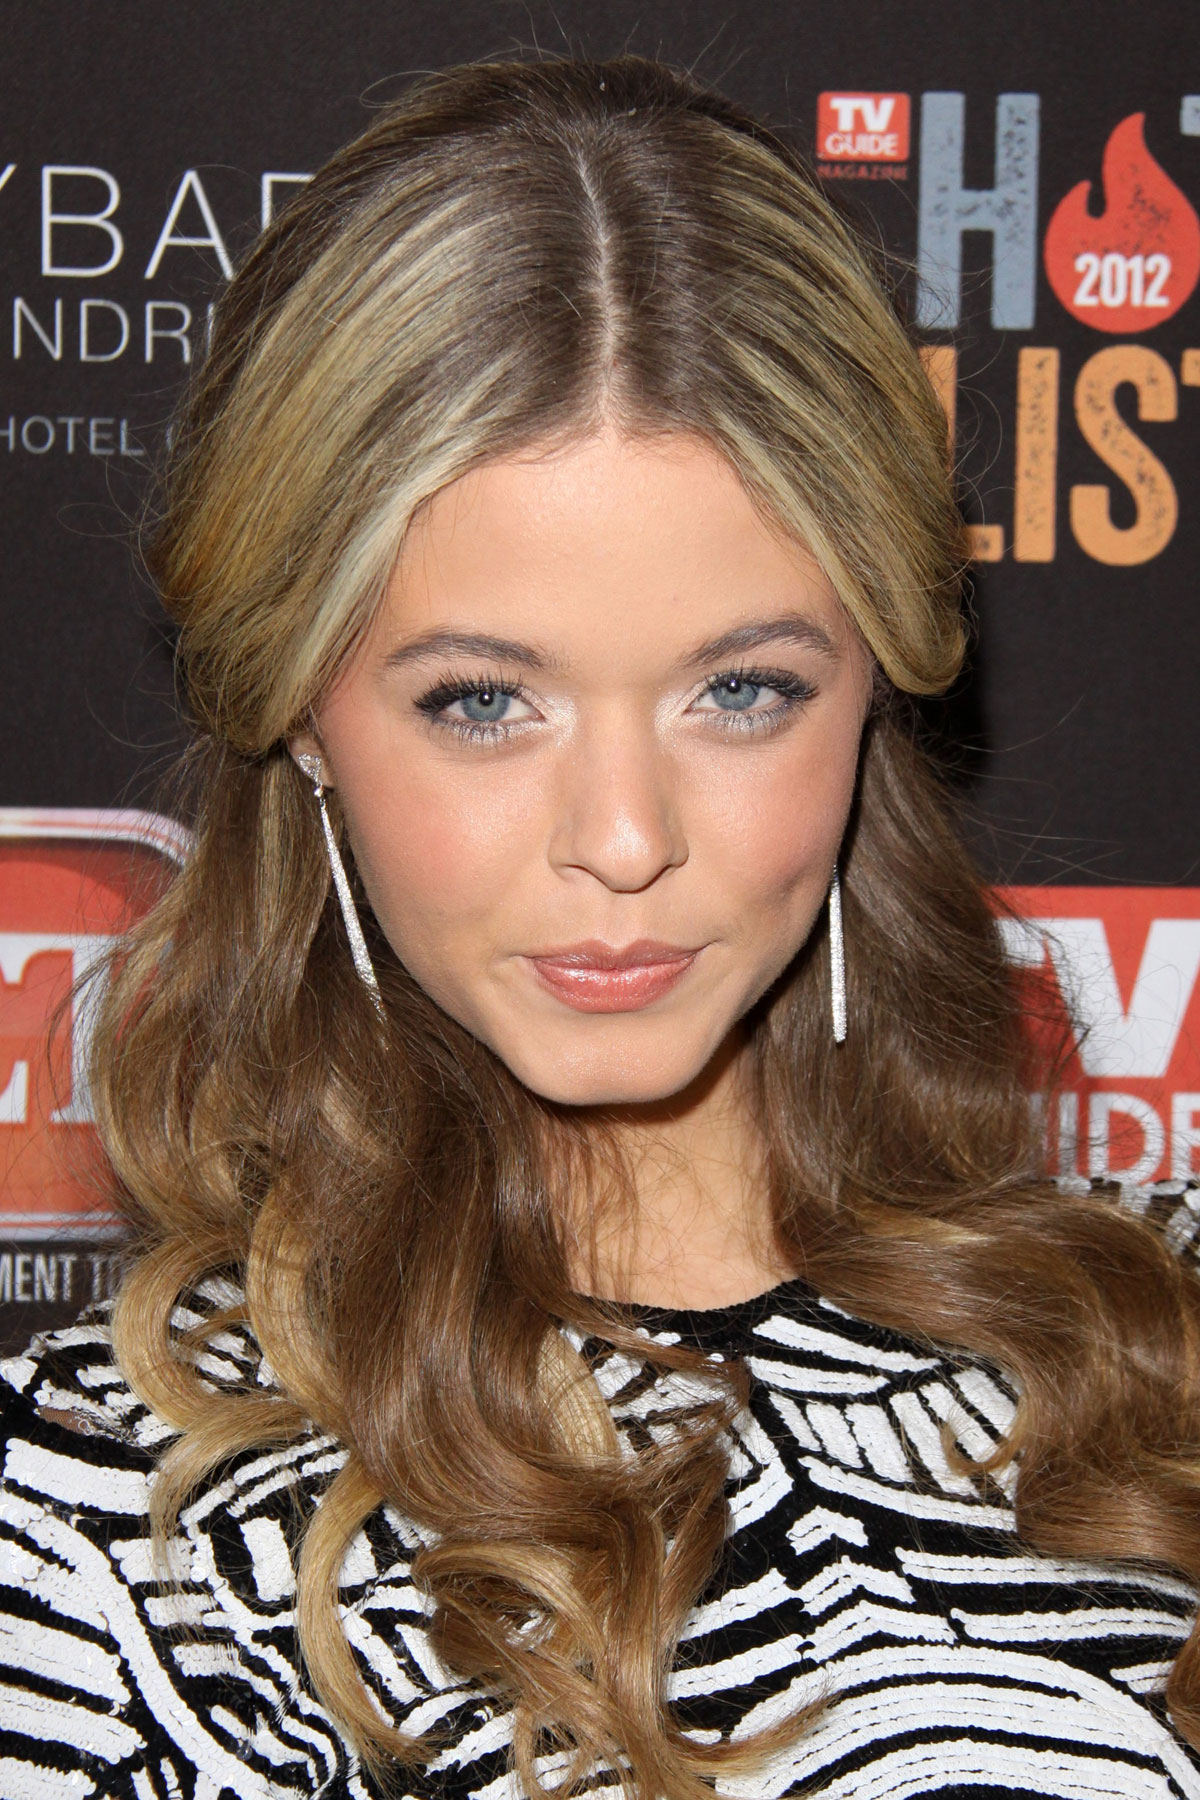 Sasha pieterse at 2012 tv guide magazine hotlist party in hollywood sasha pieterse thecheapjerseys Image collections